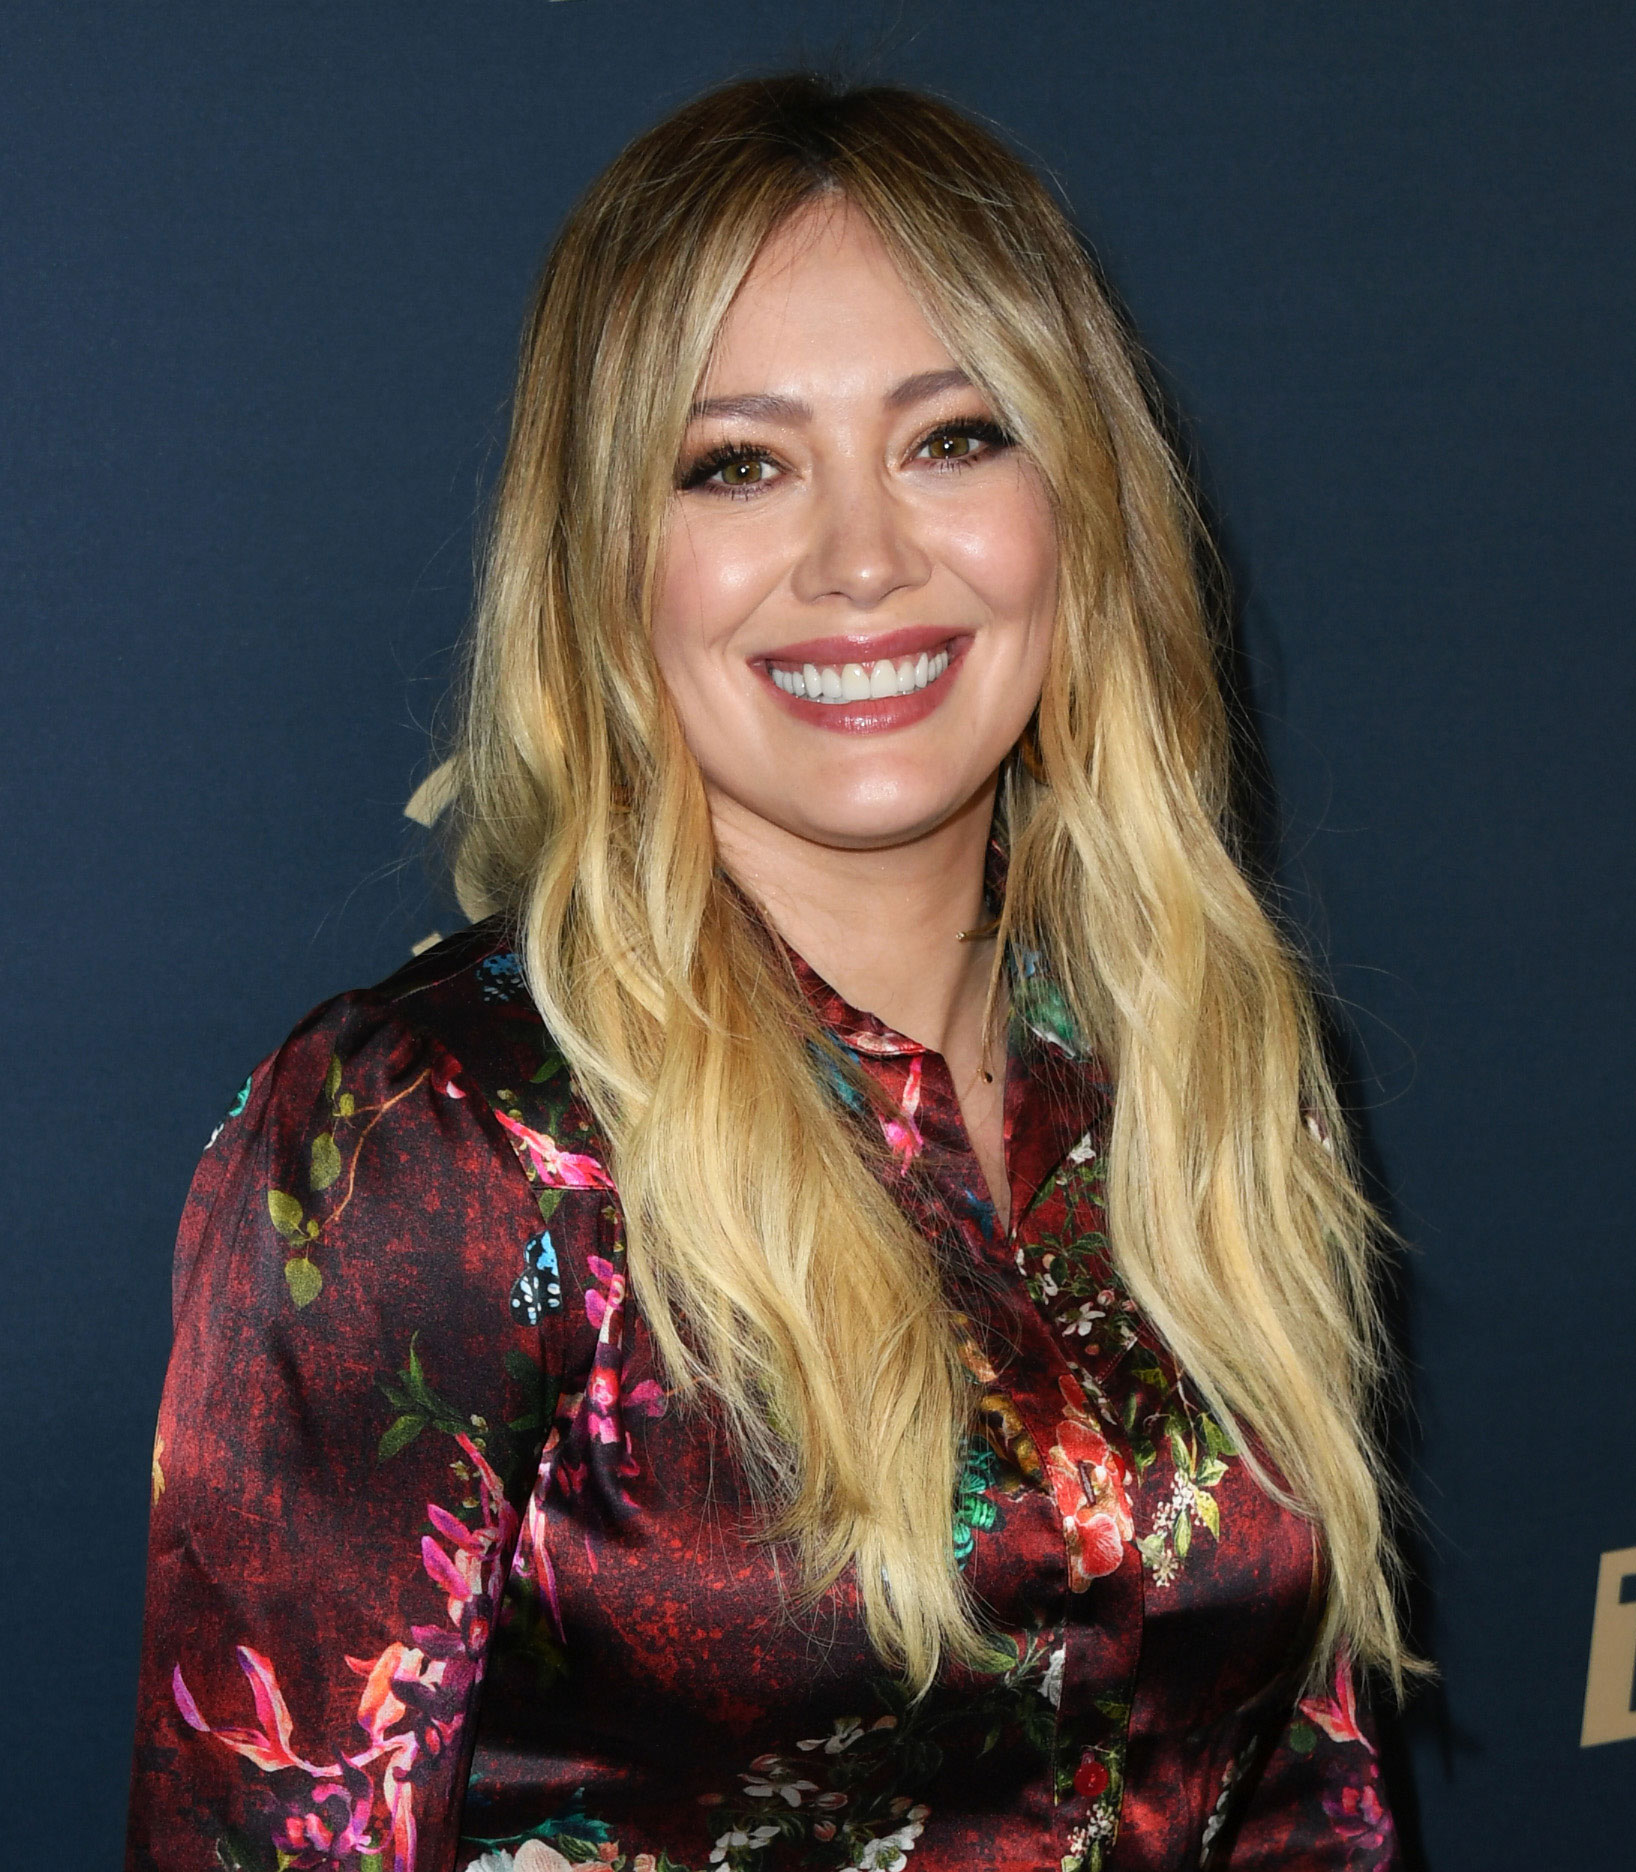 Hilary Duff Is Getting Mom-Shamed for Piercing Her Daughter's Ears